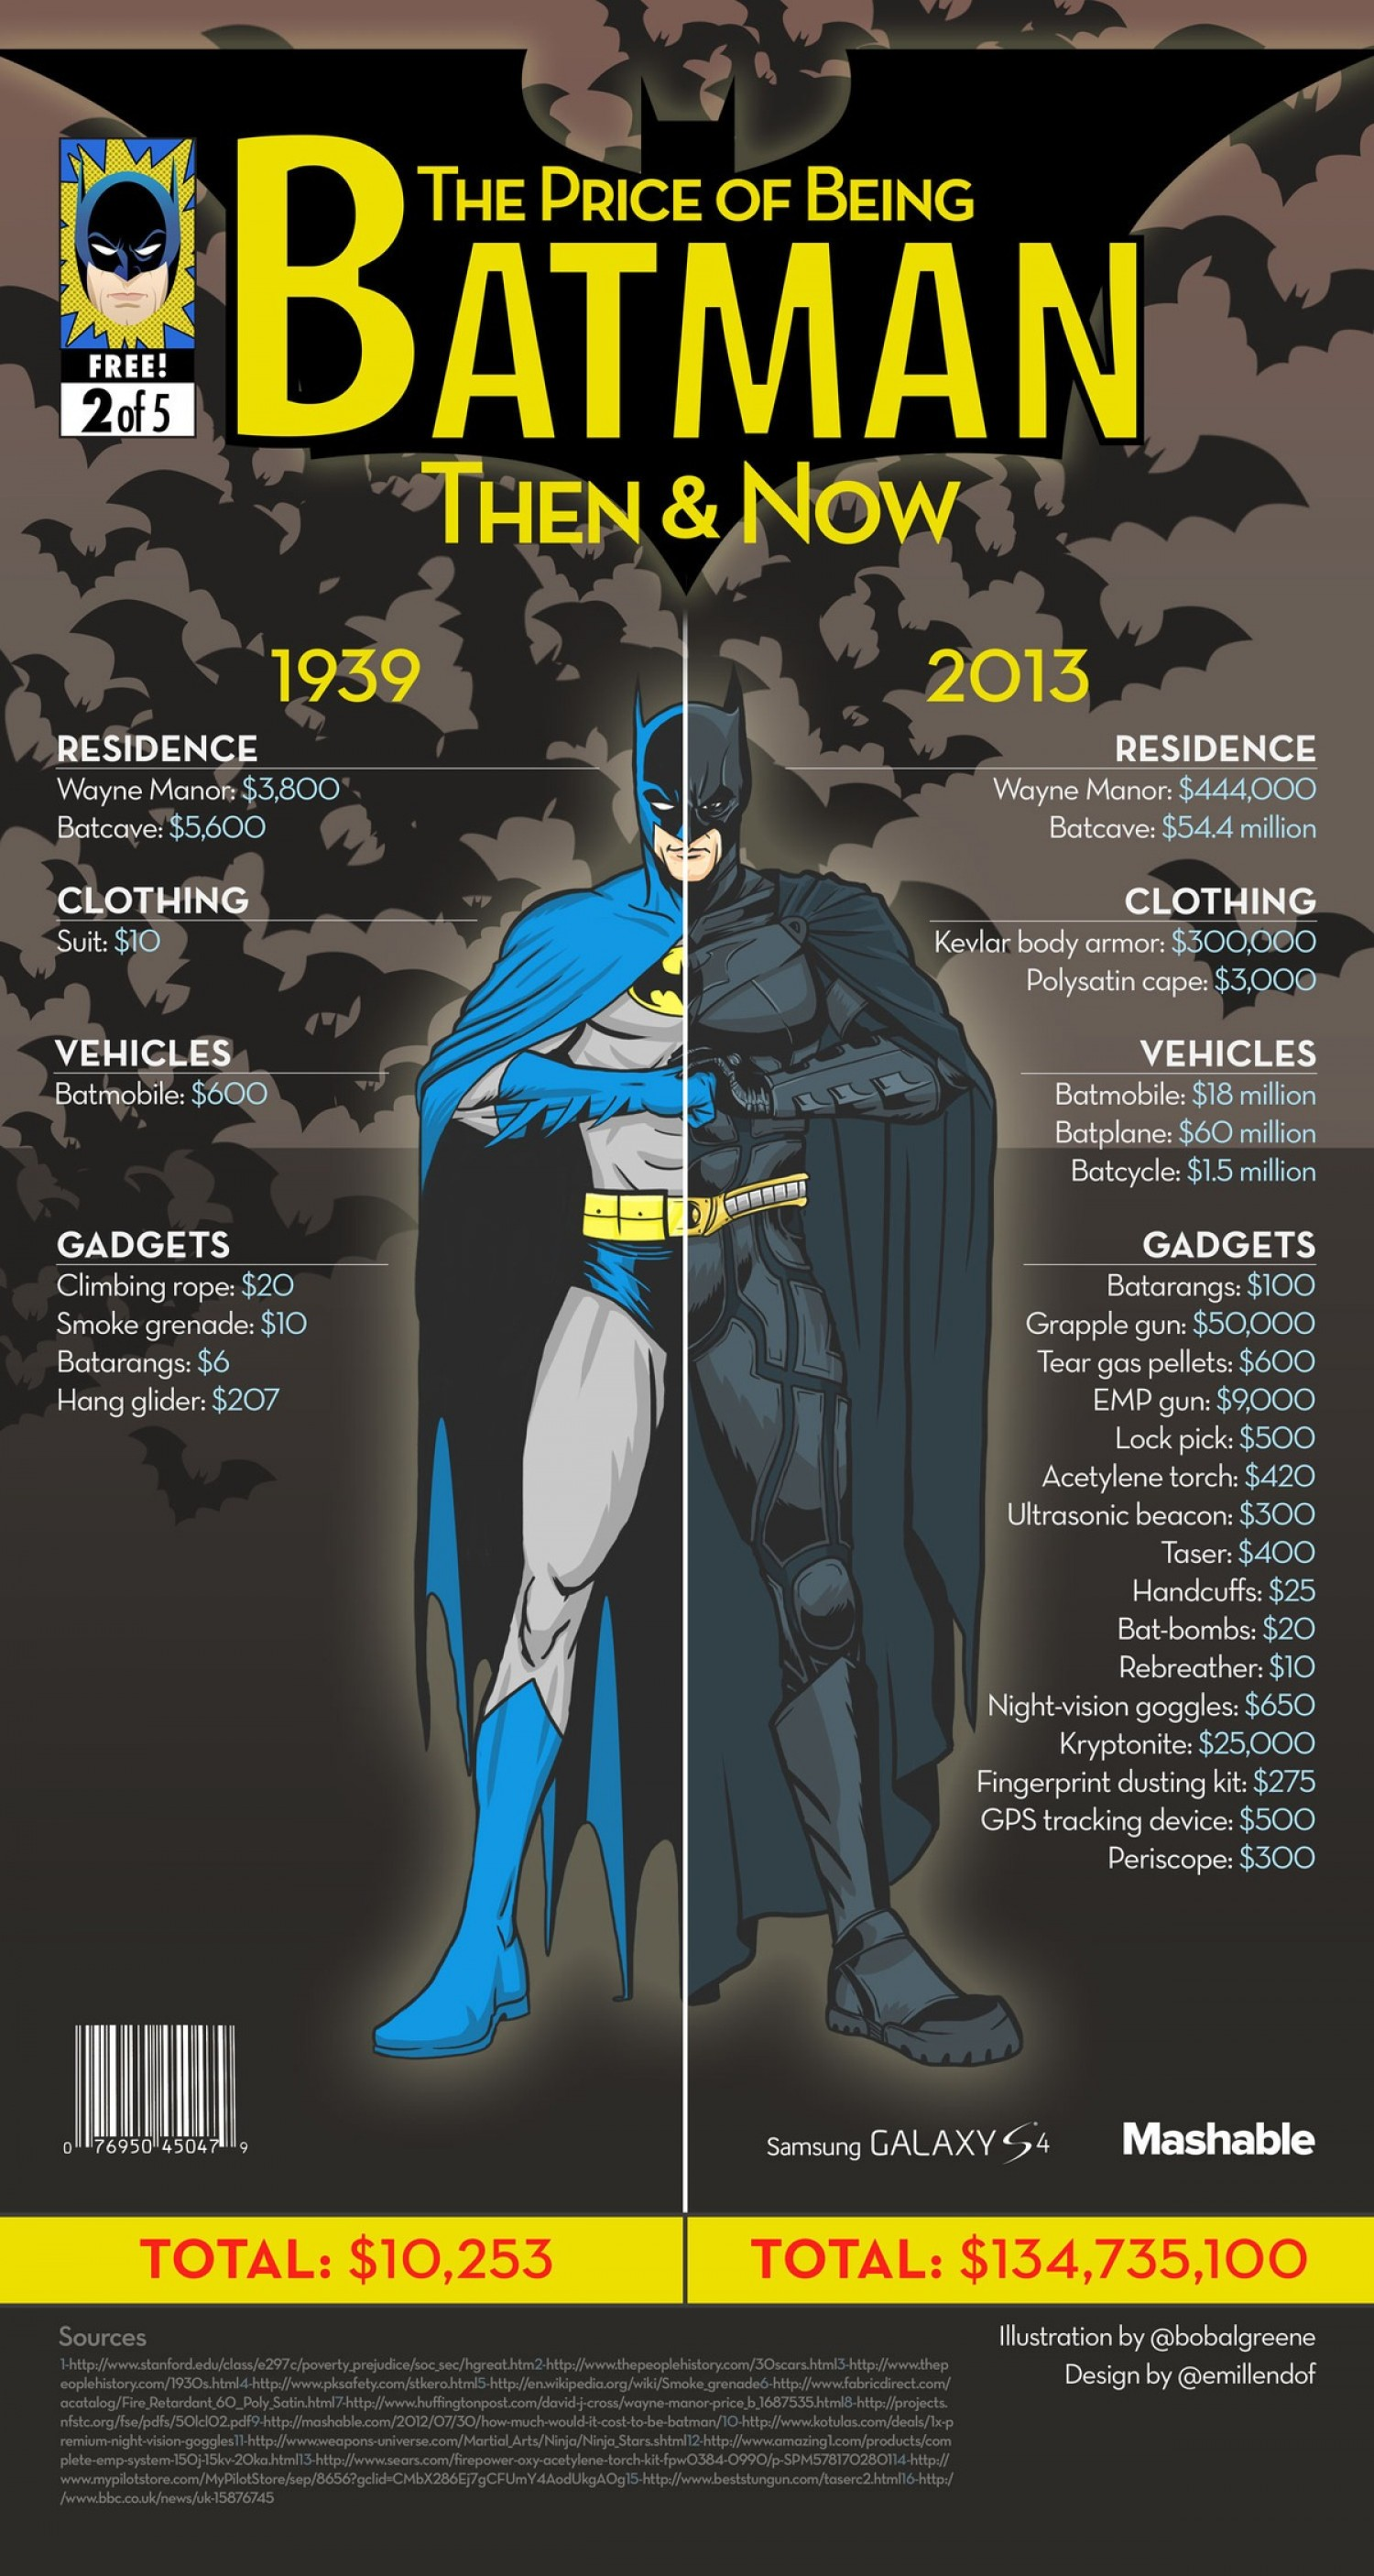 04 how-much-does-it-cost-to-be-batman_51e5a08ea22f9_w1500